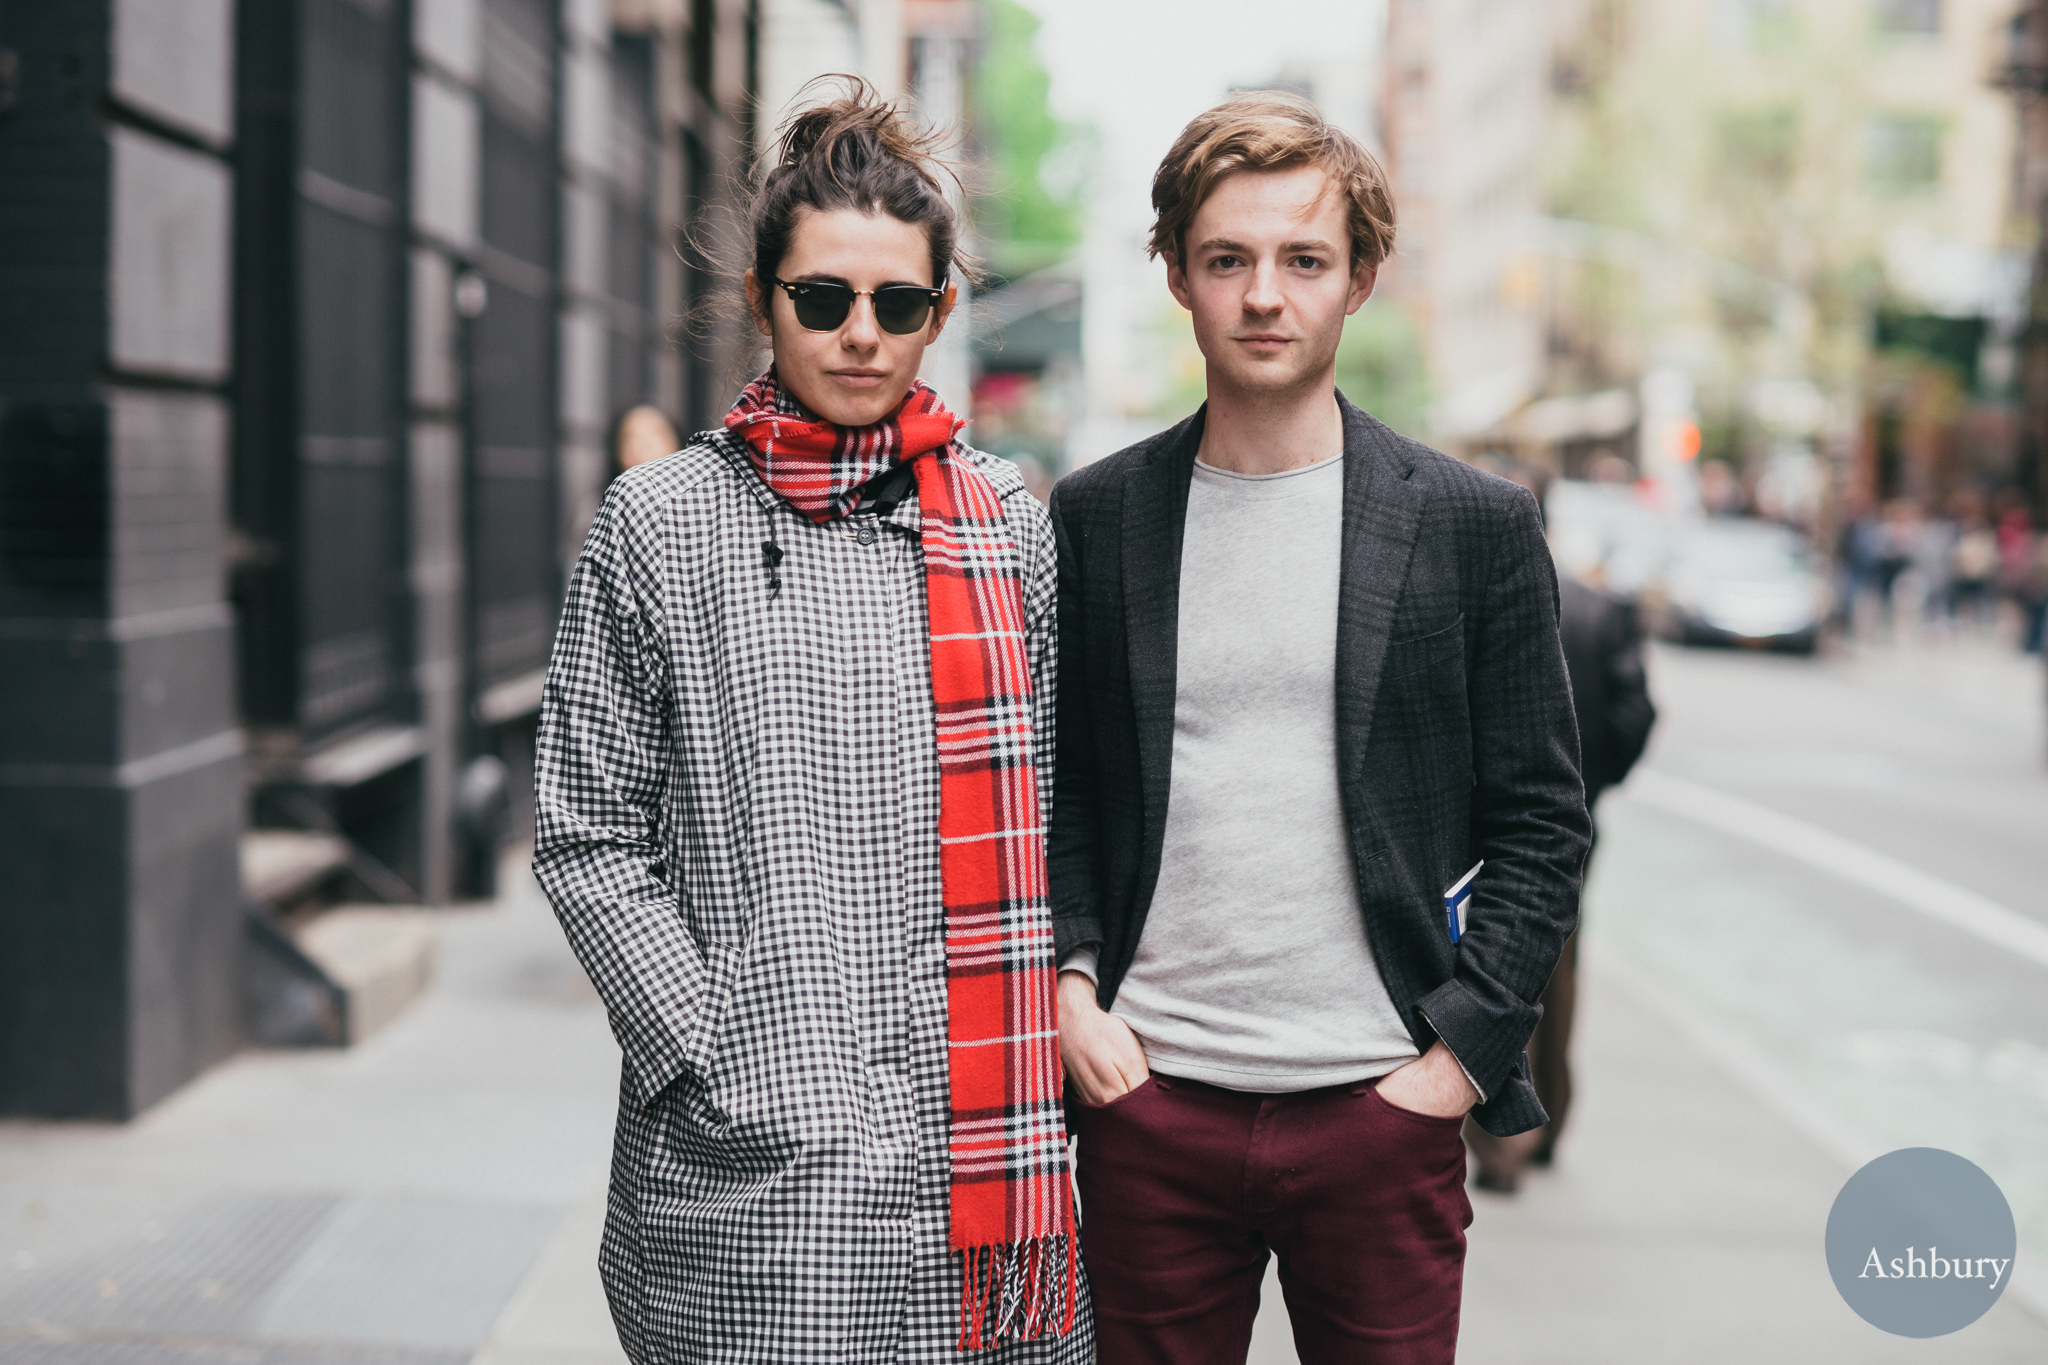 fashionable pair - street style